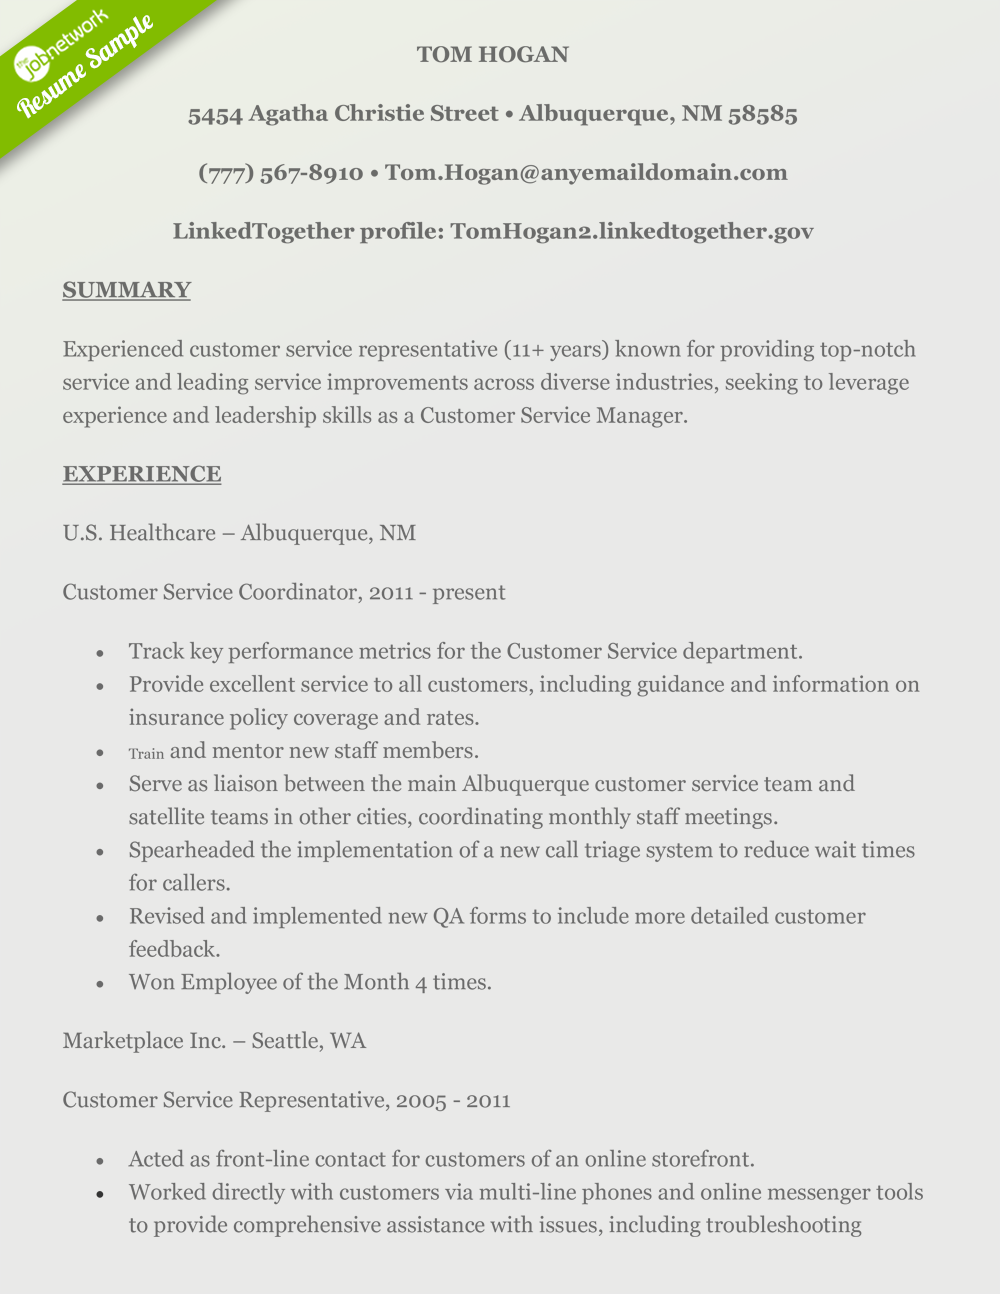 tom hogan resume - Customer Service Resume